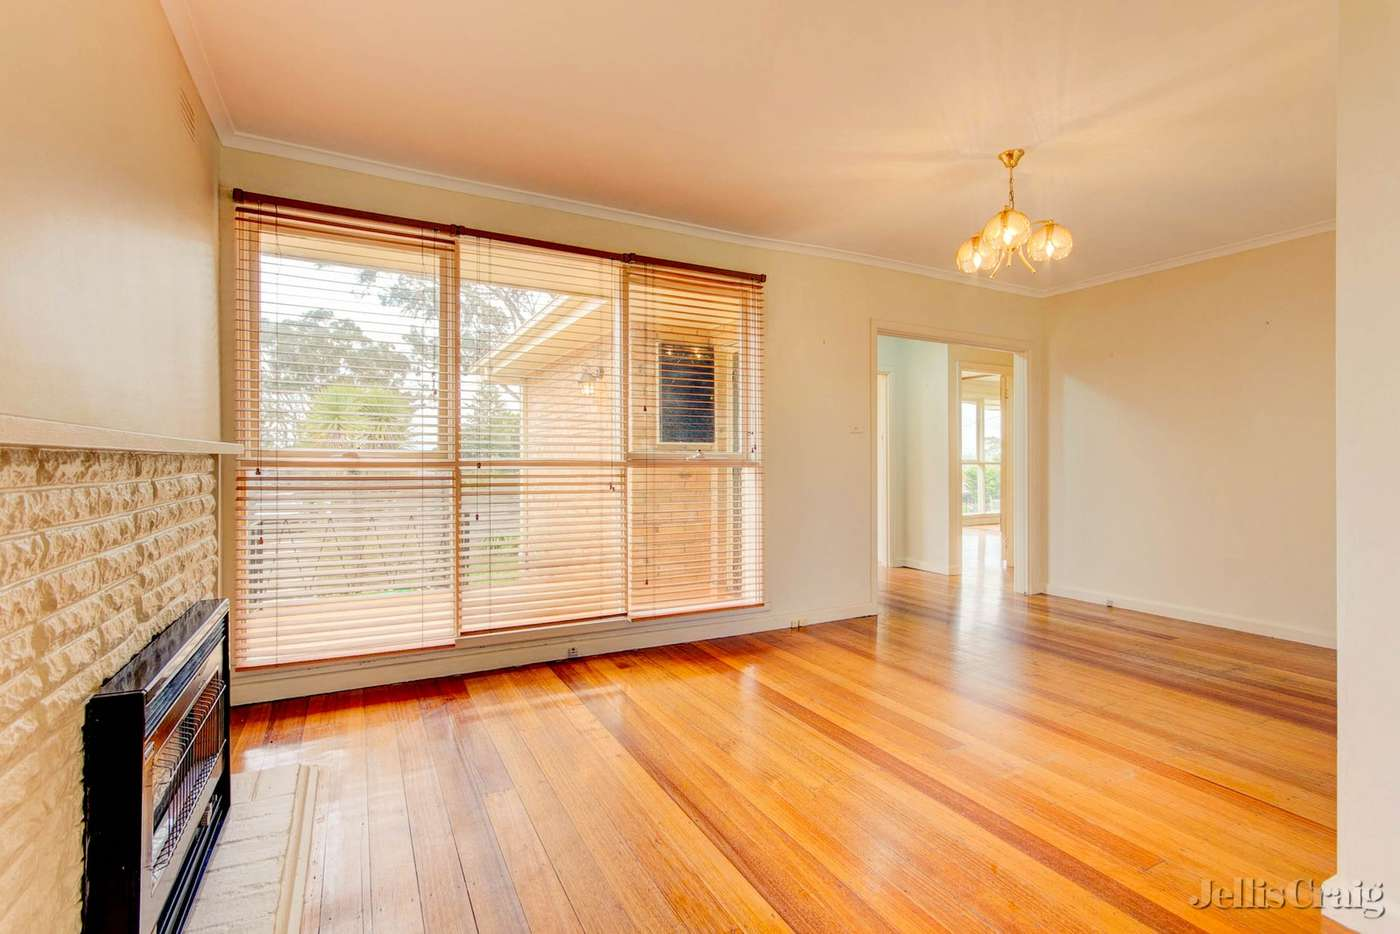 Fifth view of Homely house listing, 1/26 Baird Street North, Doncaster VIC 3108